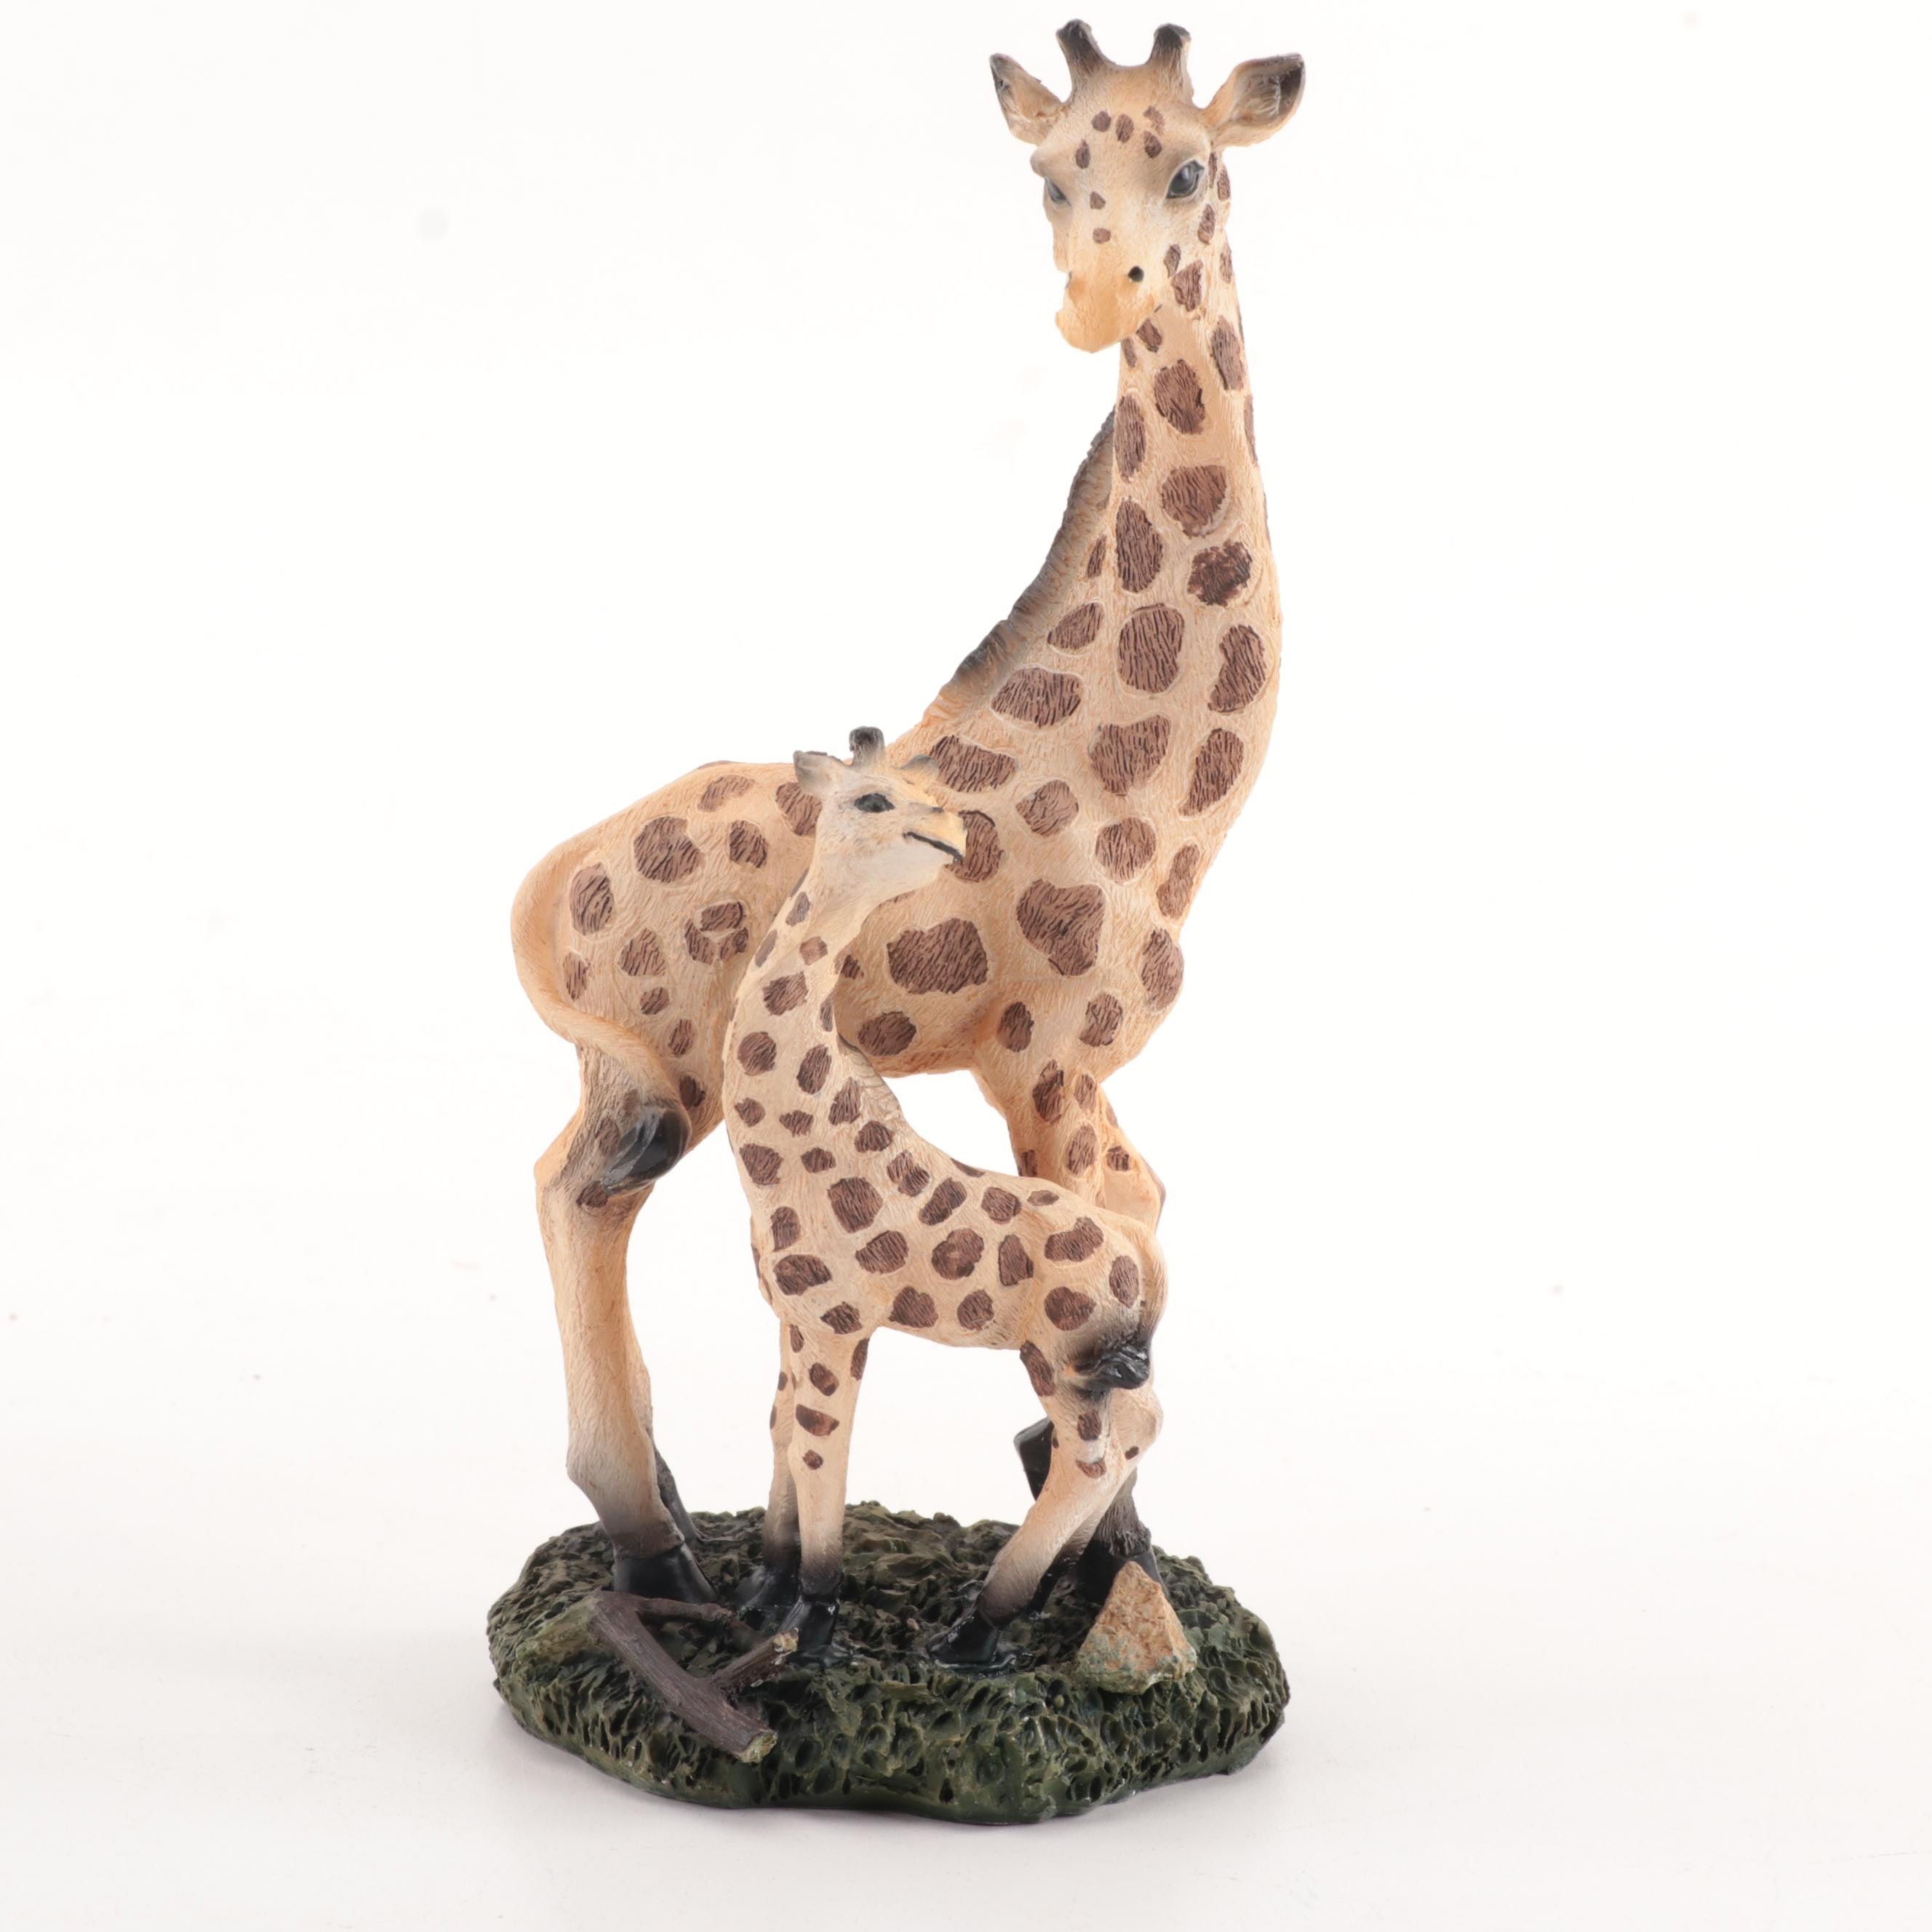 Hand-Painted Cast Resin Giraffe with Calf Figurine